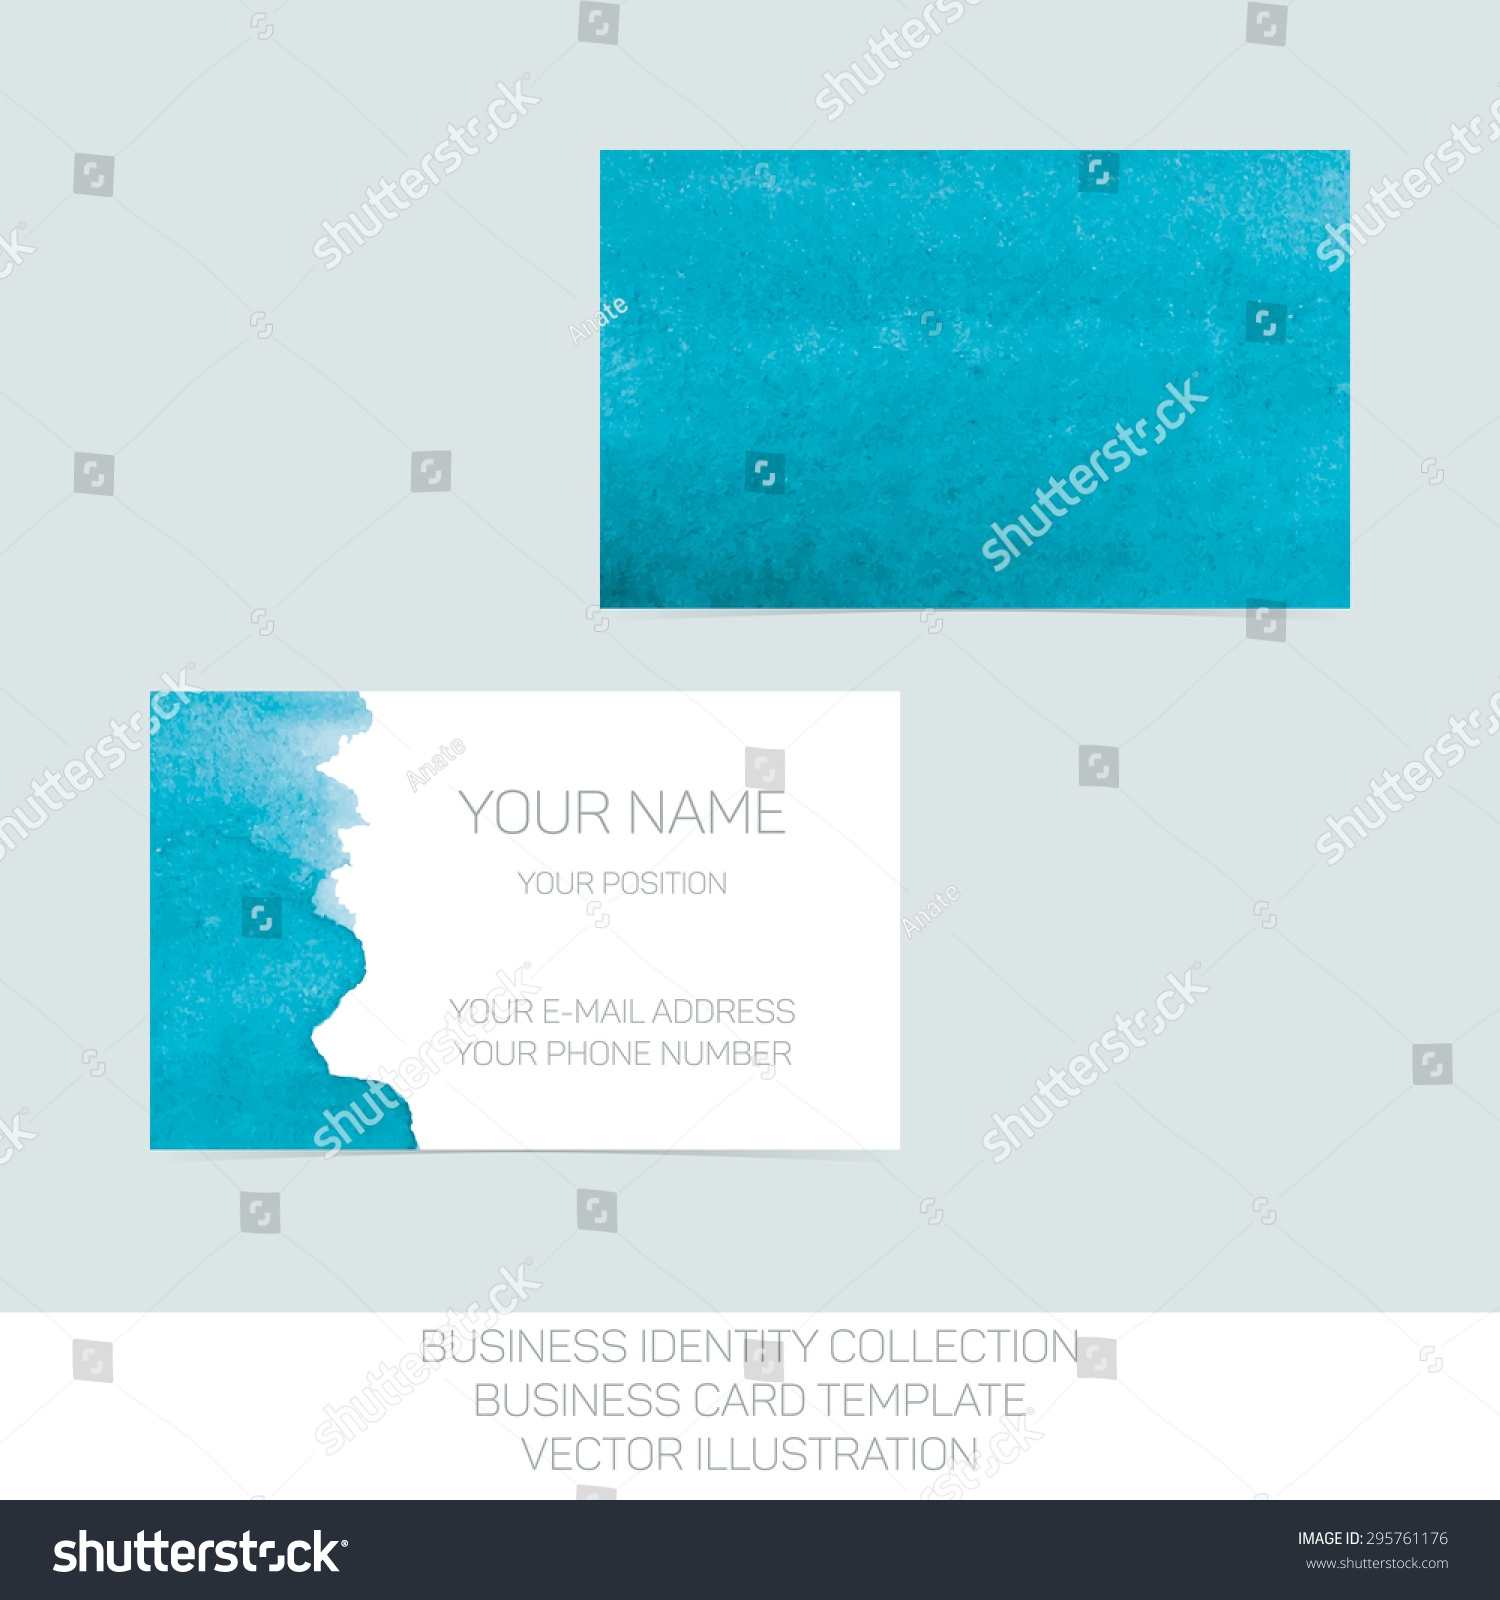 Business Identity Collection Turquoise Tiffany Teal Stock Vector ...